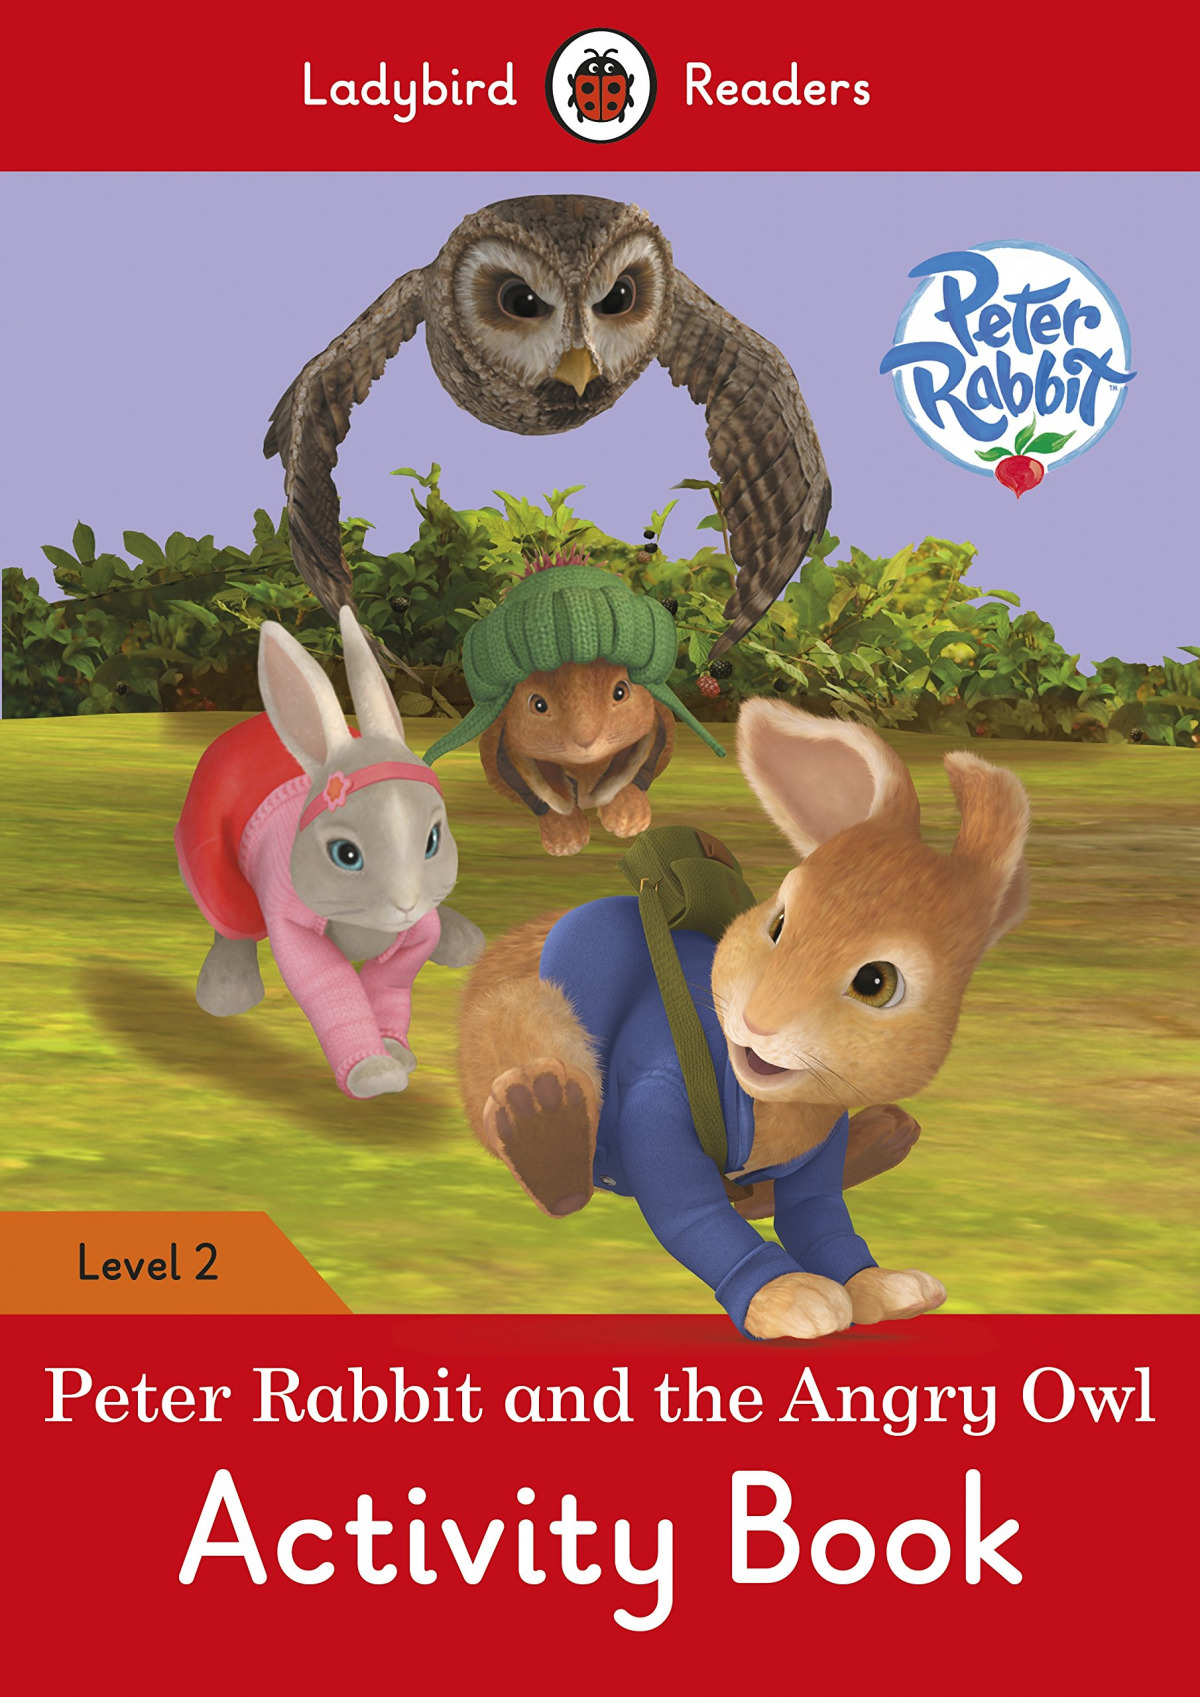 THE ANGRY OWL. PETER RABBIT. ACTIVITY BOOK